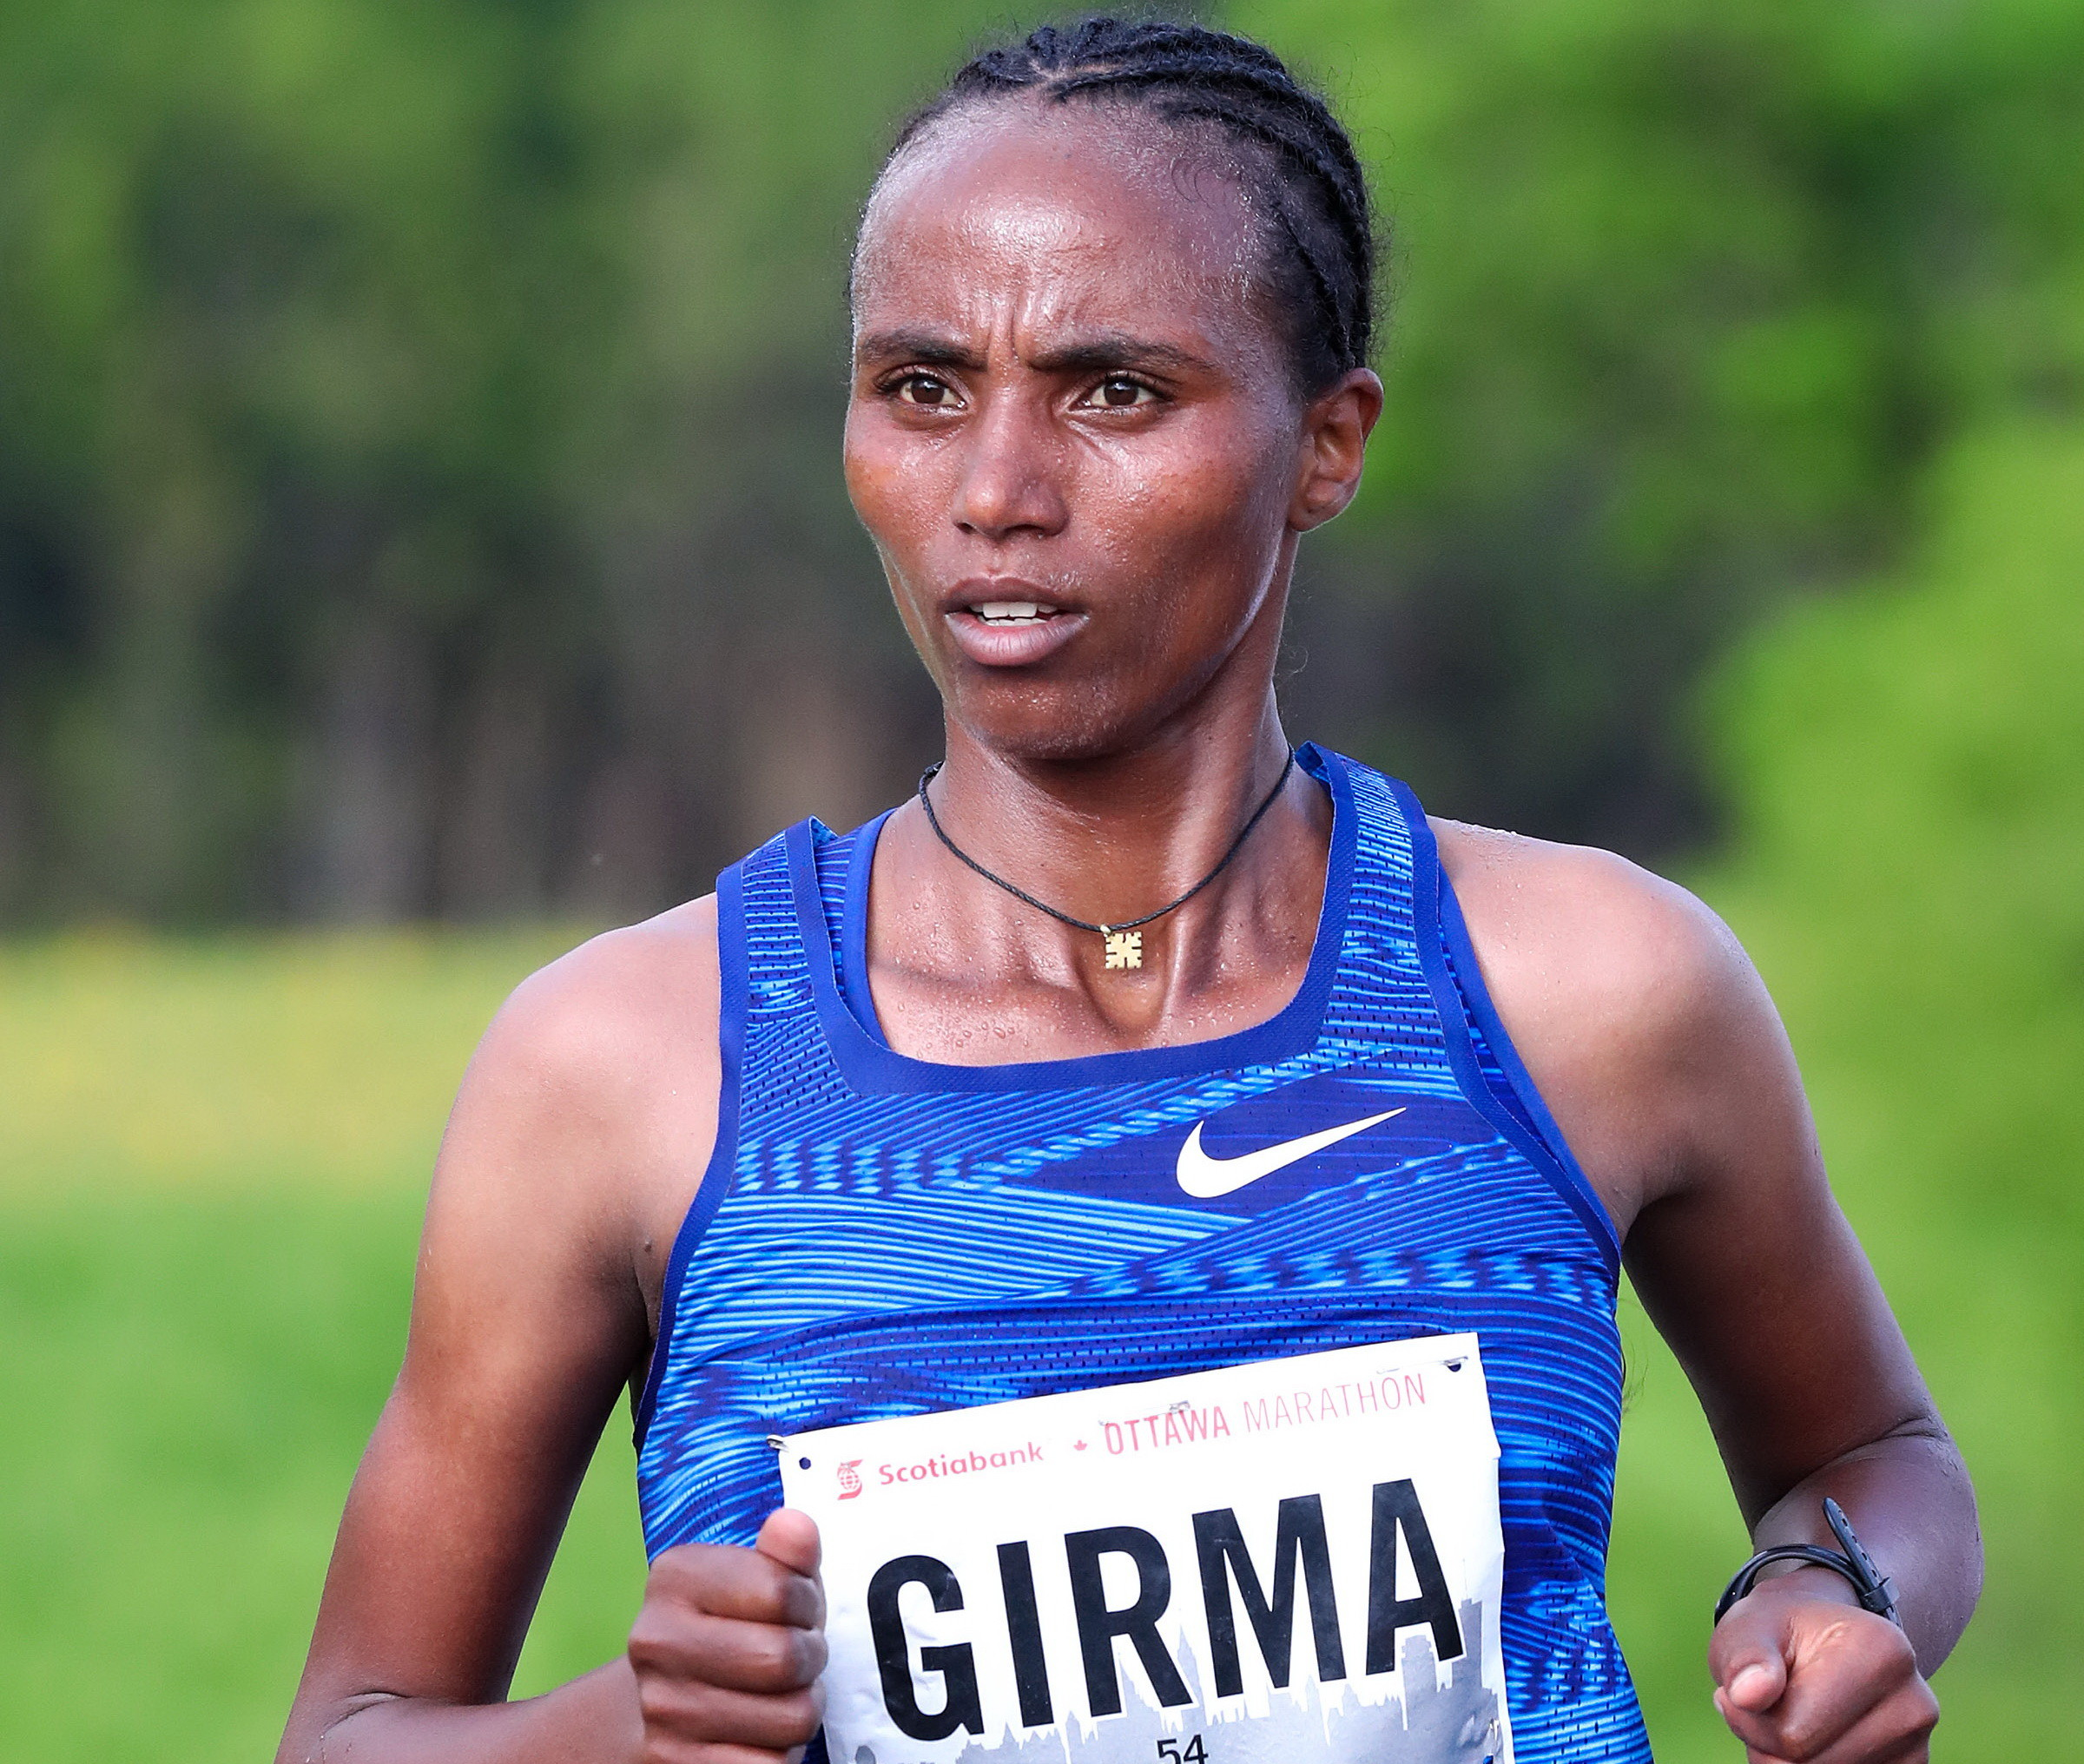 Ethiopian Tigist Girma Withdraws from Toronto Waterfront Marathon